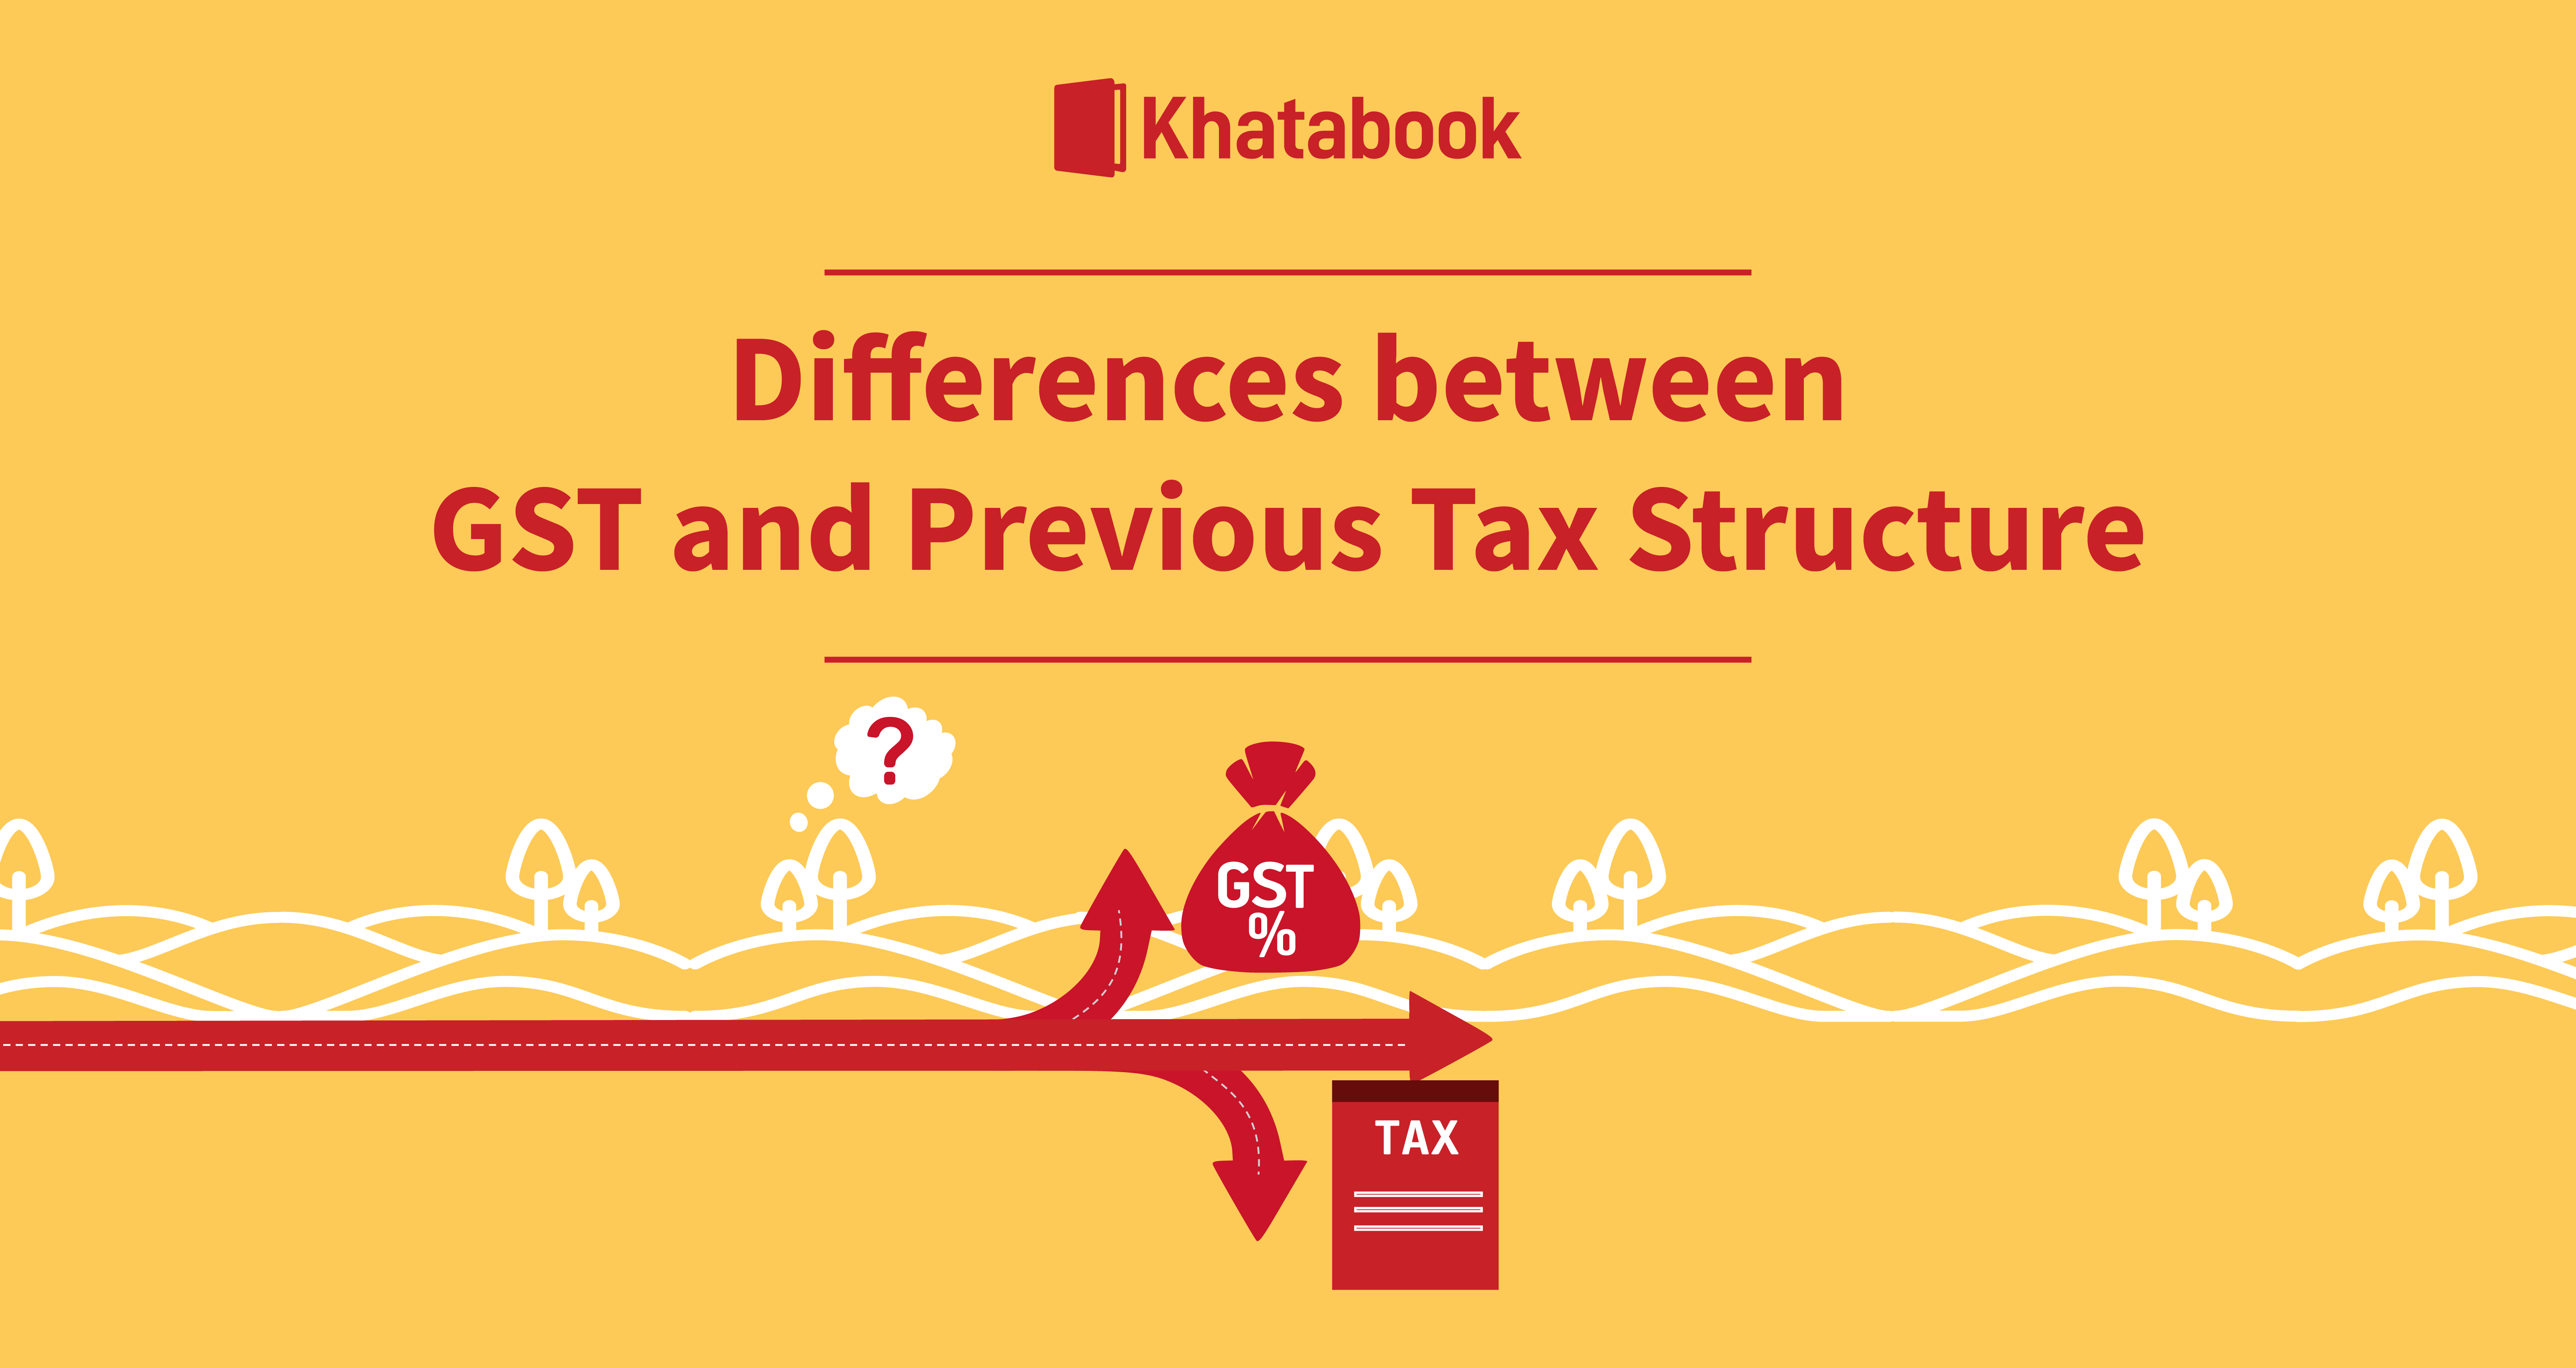 Differences between GST and Previous Tax Structure